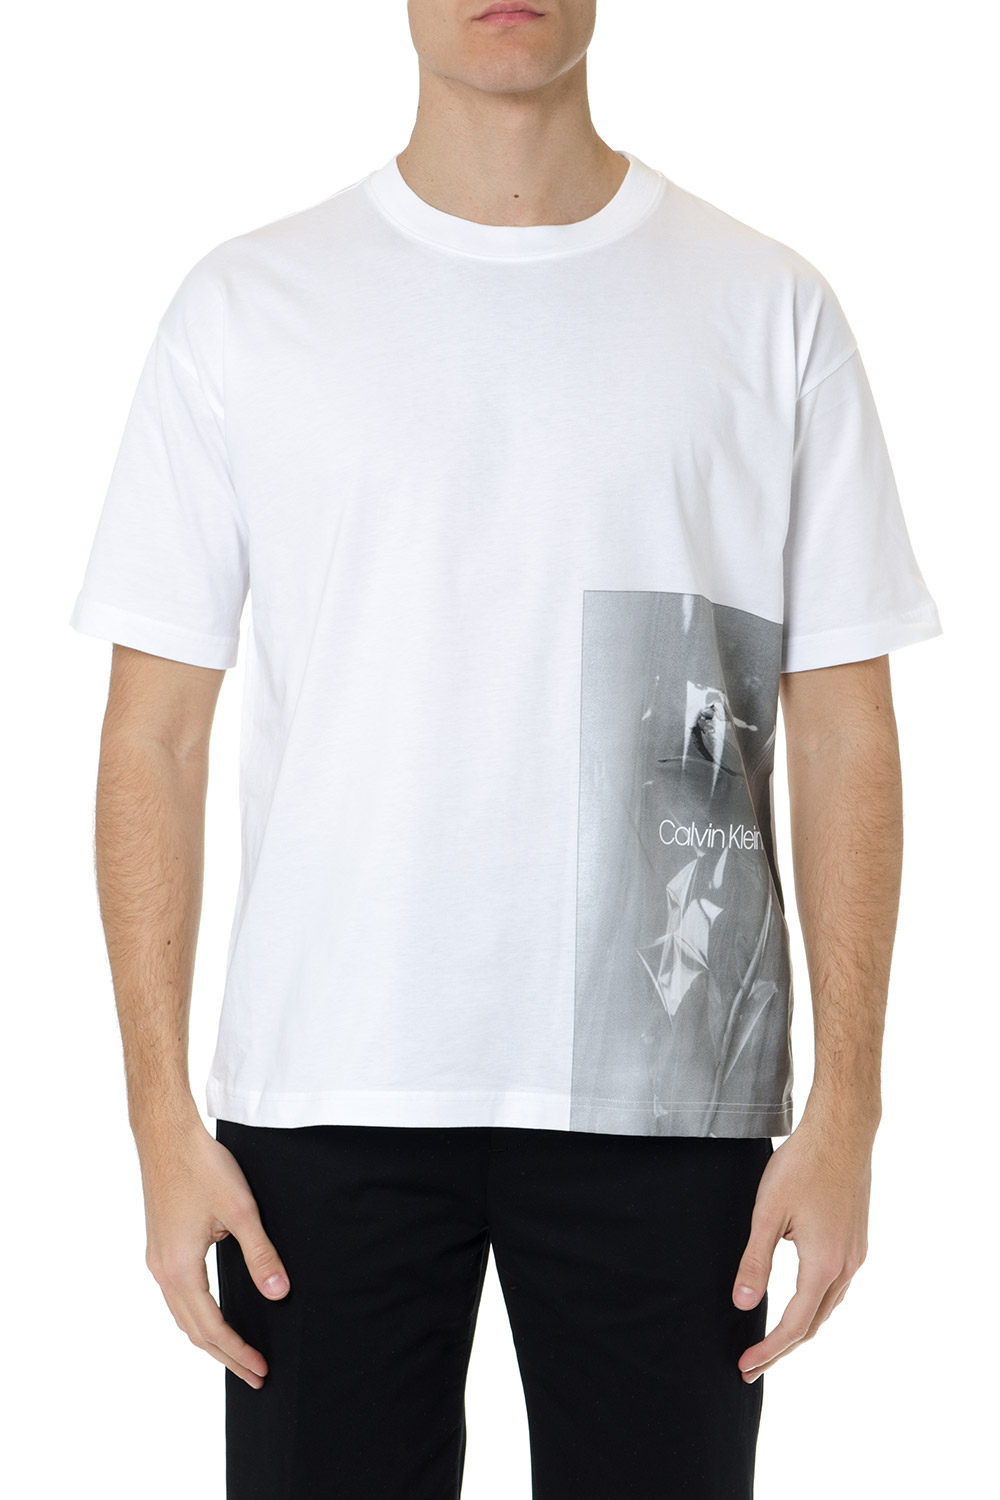 8c8ad44f WHITE COTTON T-SHIRT WITH GRAPHIC PRINT SS 2019 - CALVIN KLEIN - Boutique  Galiano